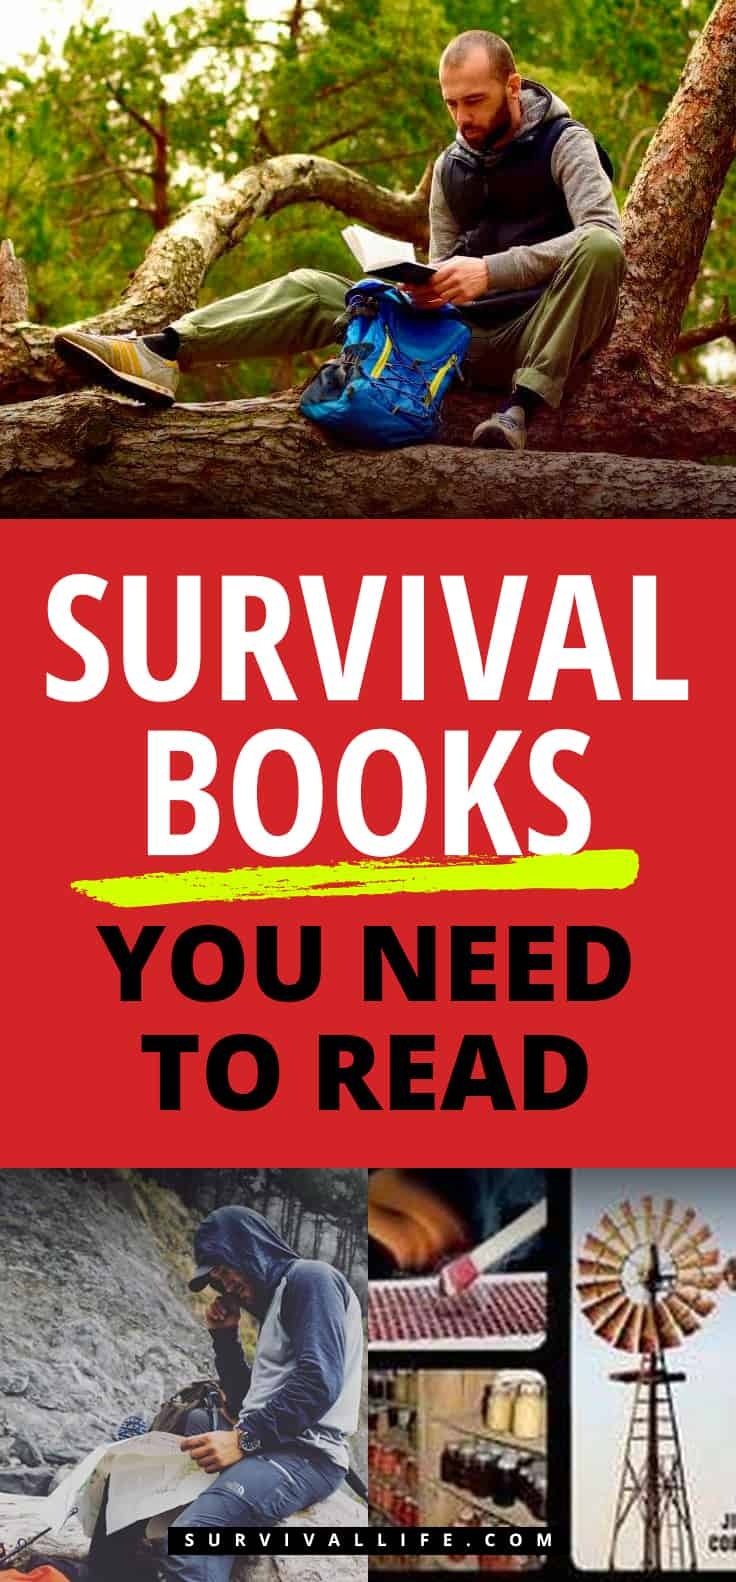 Survival Books | Survival Books You Need To Read